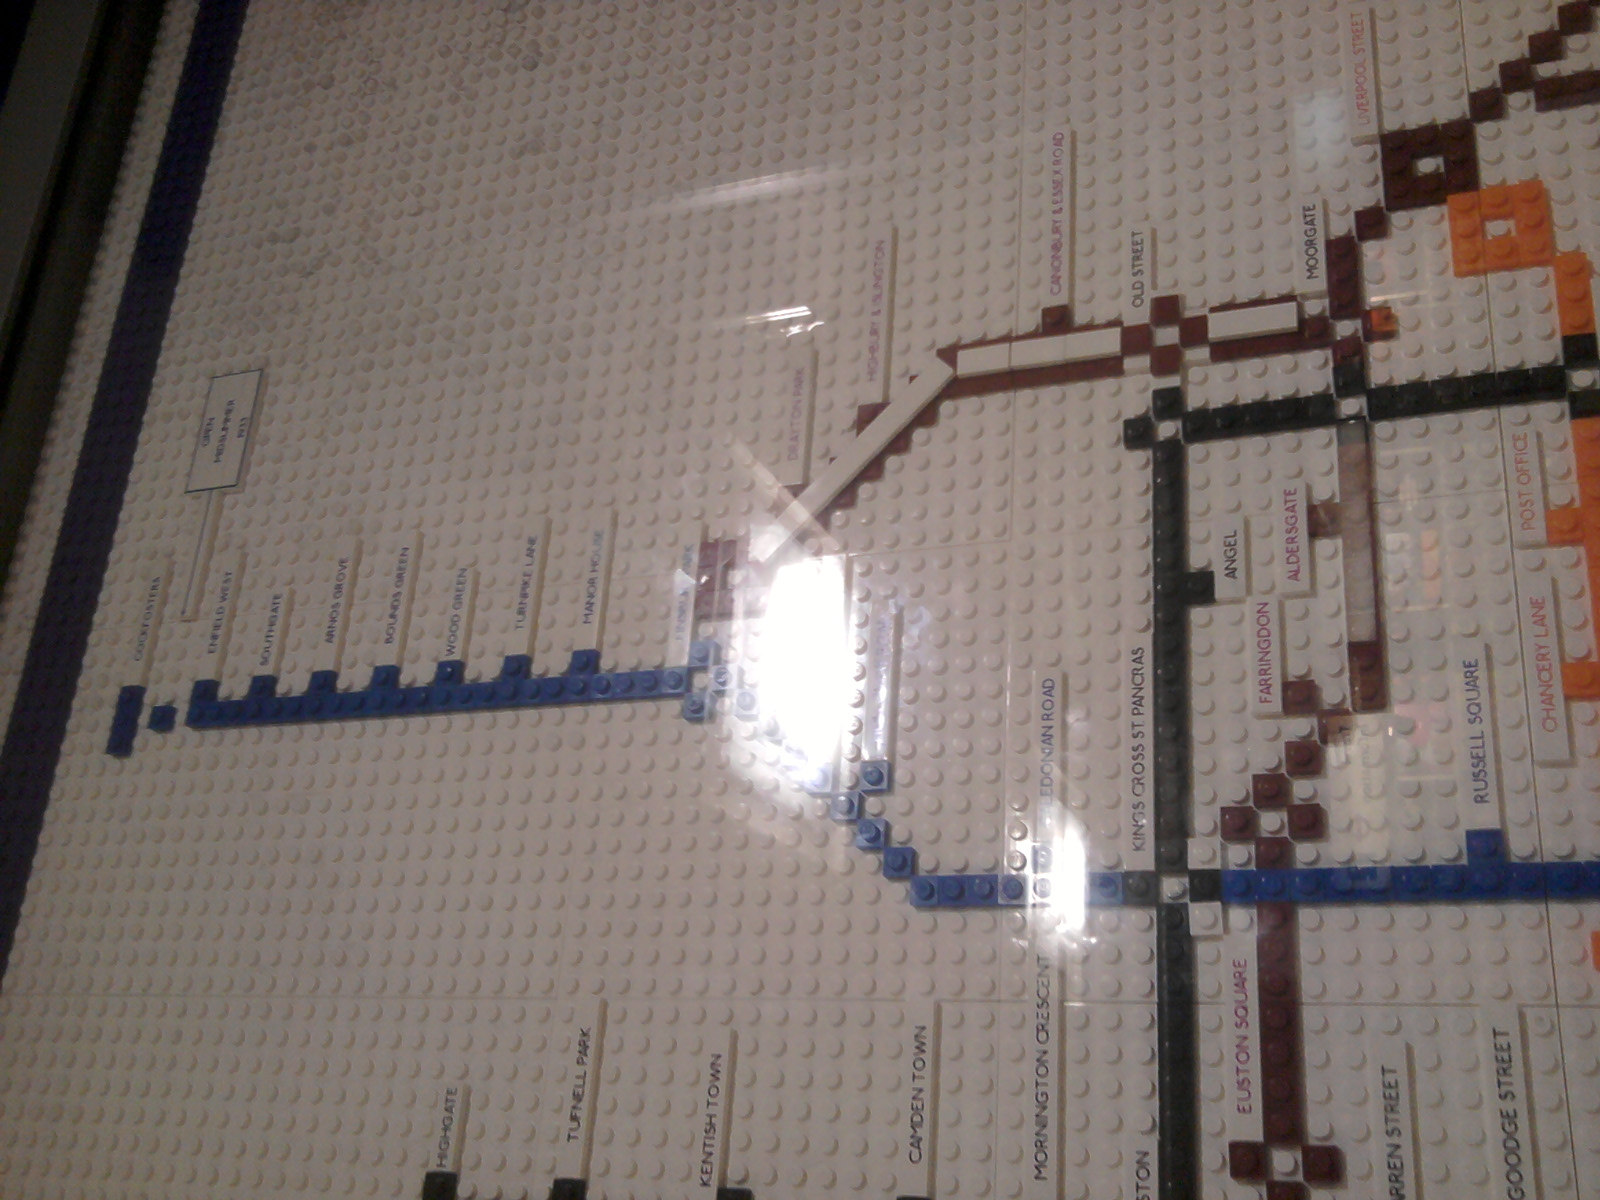 LEGO 1933 Harry Beck Underground Map in Piccadilly Circus close up showing Enfield West